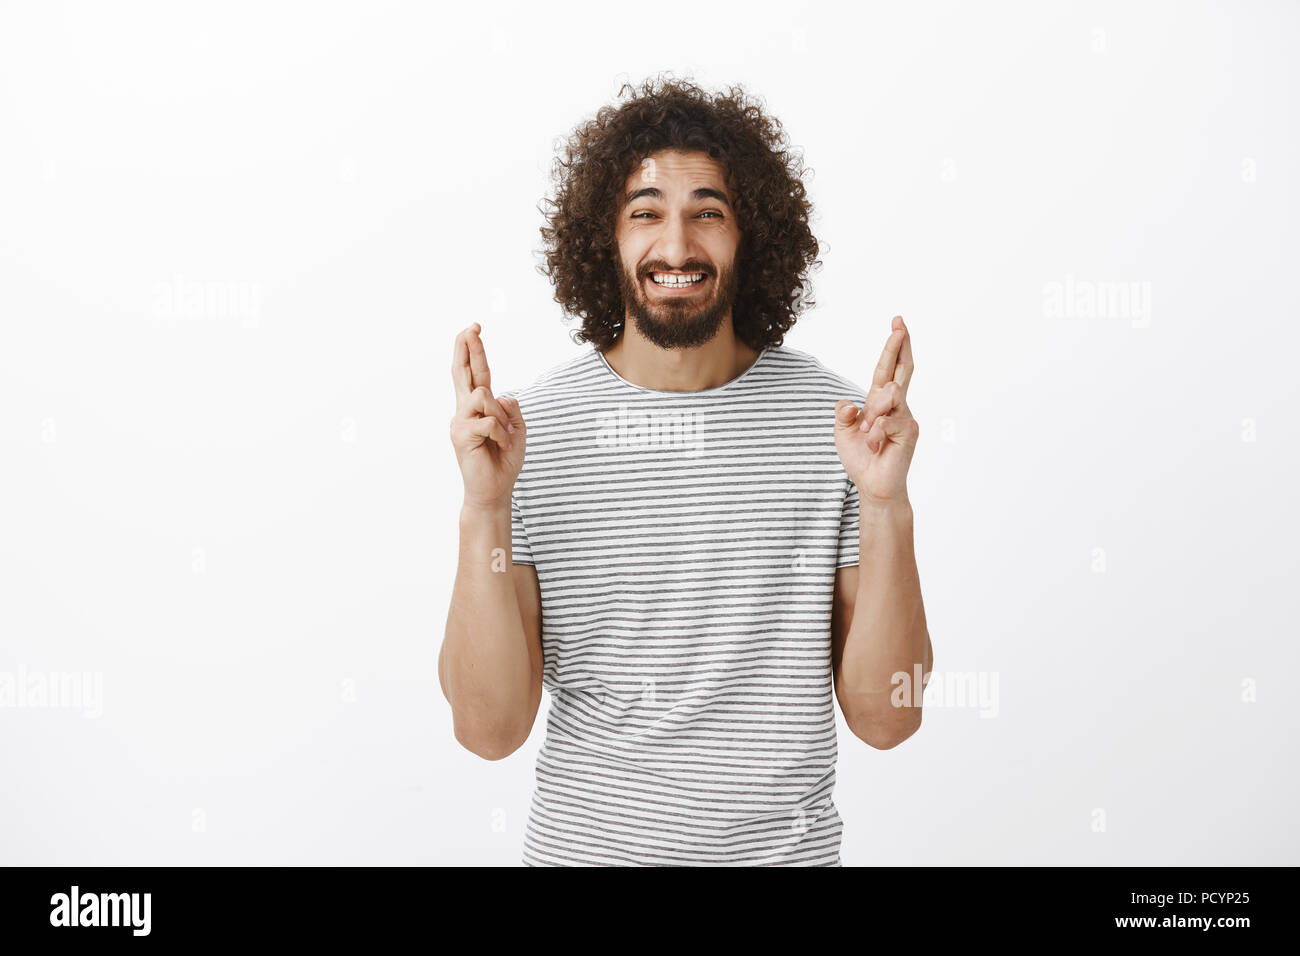 Indoor shot of anxious believing eastern bearded man with afro hairstyle, raising crossed fingers and grimacing from nervousness, wanting make wish co - Stock Image